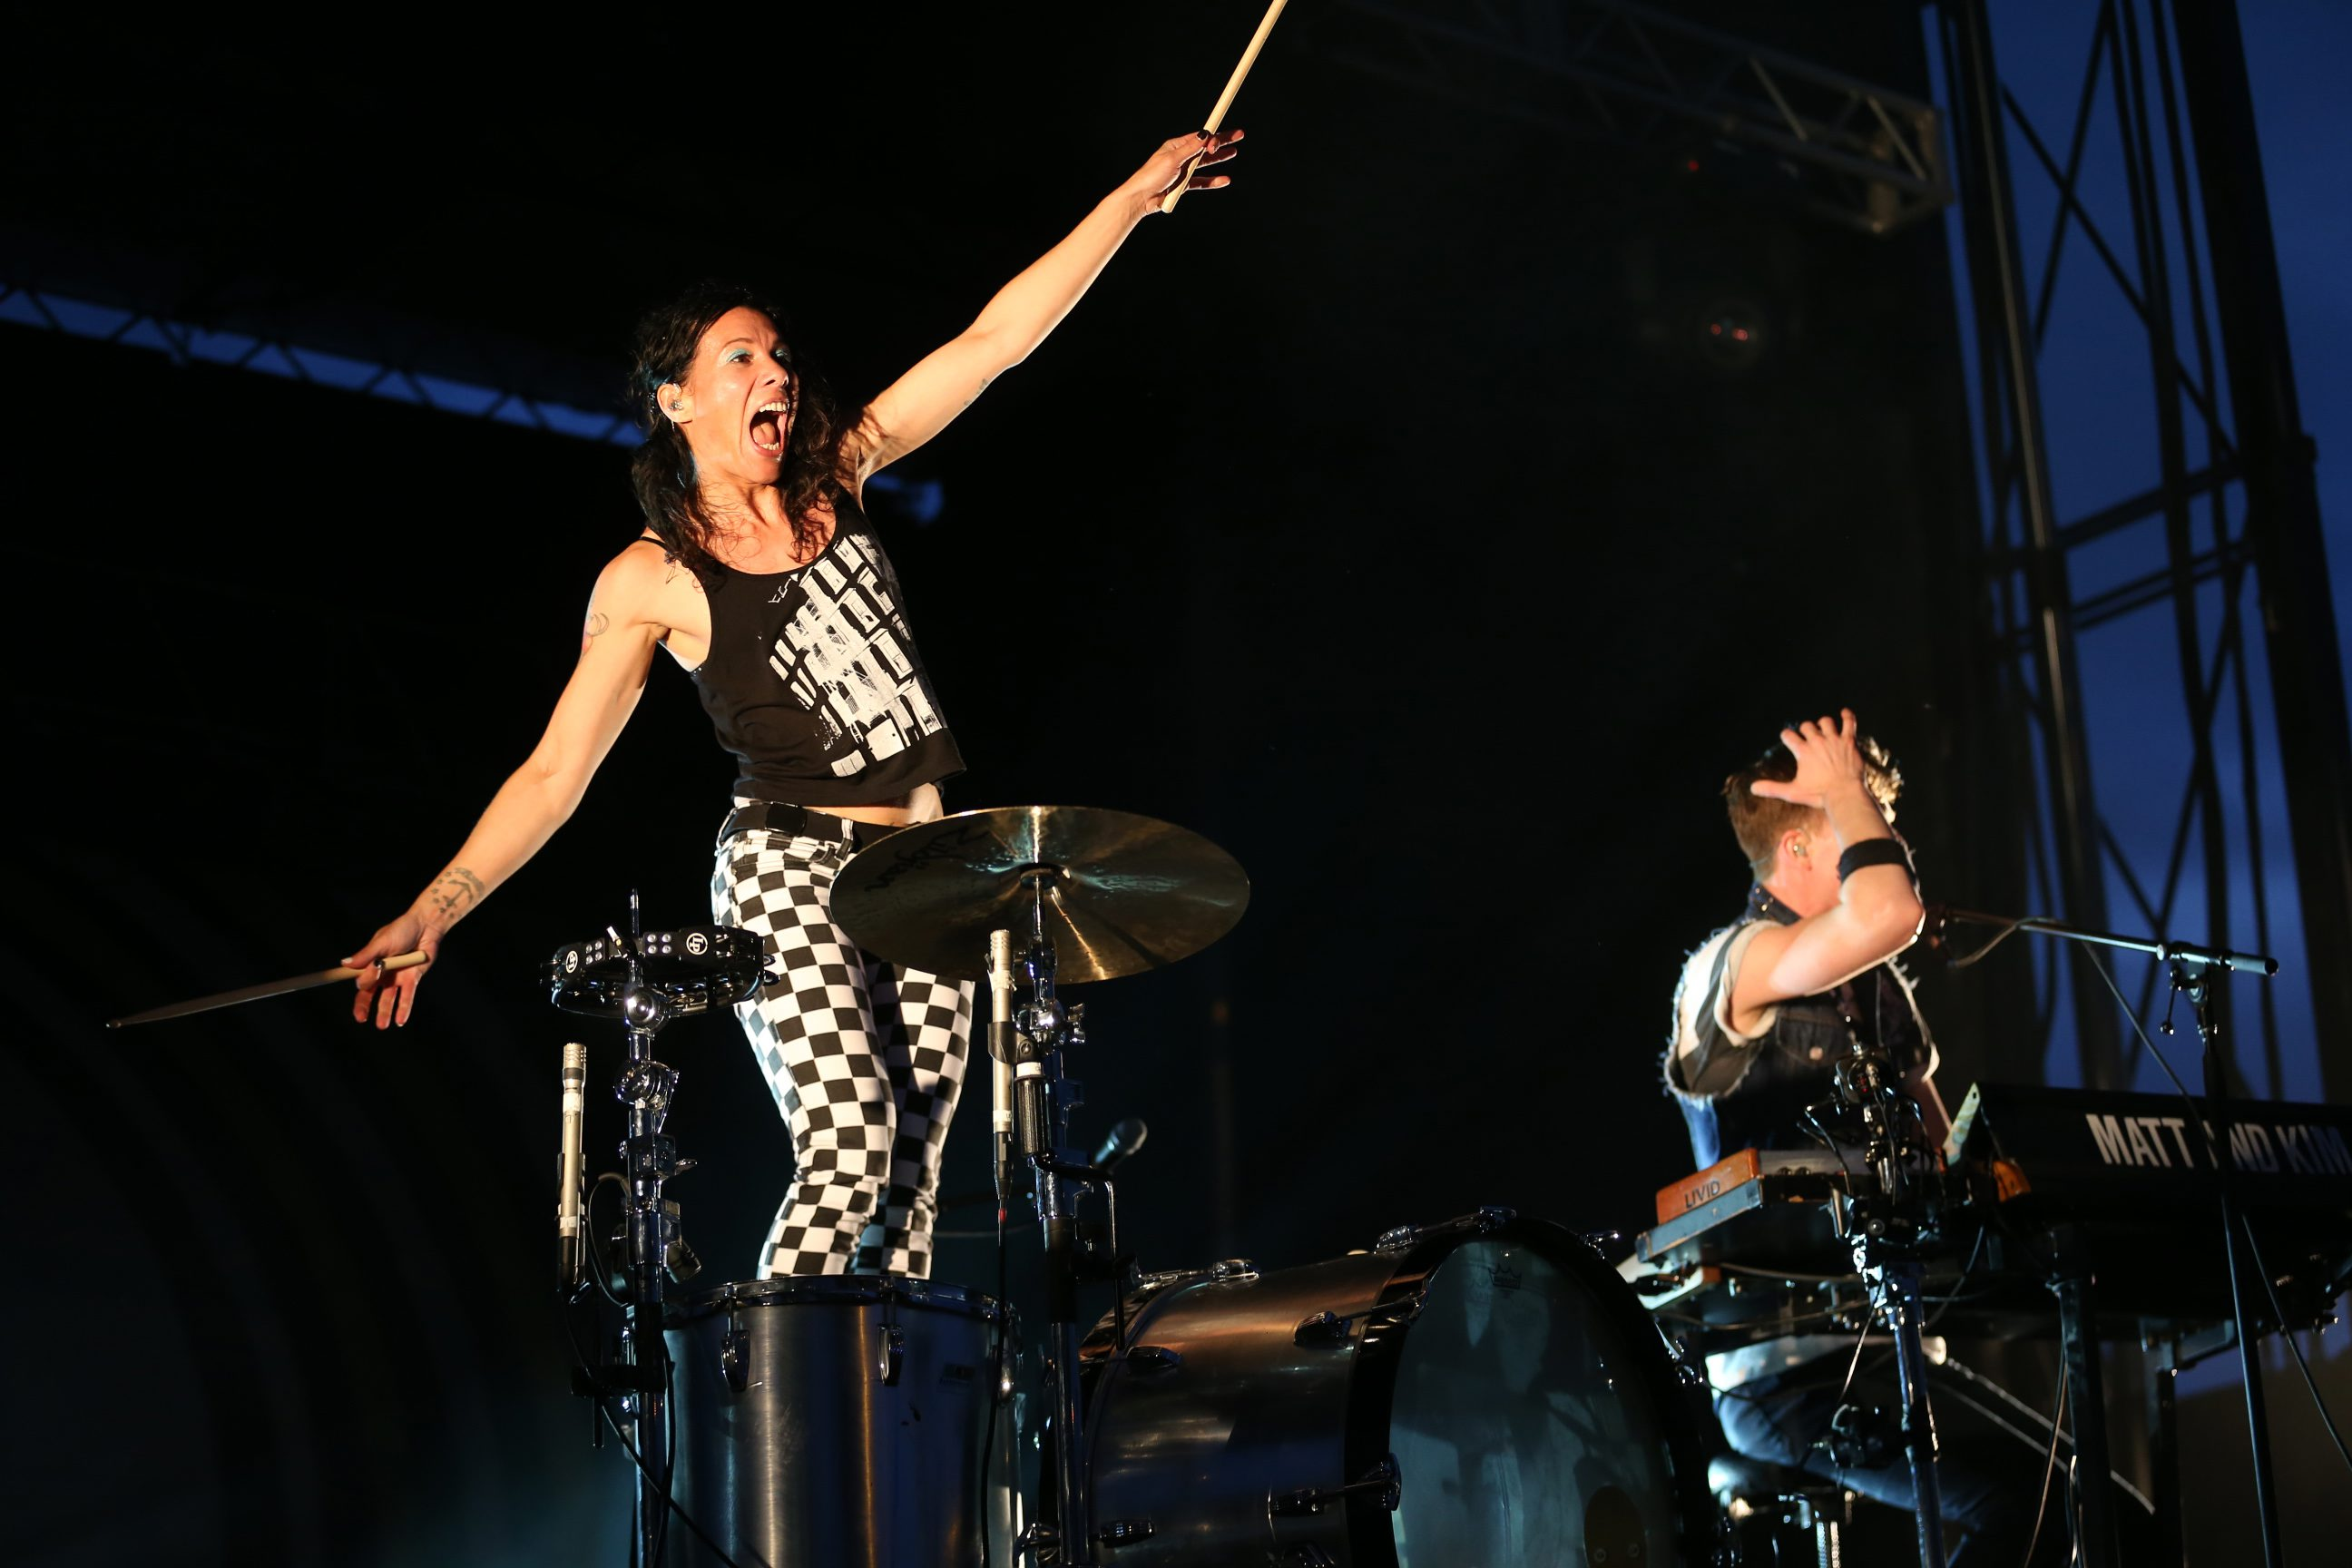 The free Thursday Canalside Concert series opened on a beautiful night with headliners Matt & Kim, a Brooklyn-based dance pop duo, giving a high-energy show. Photo gallery at buffalonews.com; more photos on Picture Page, D12.